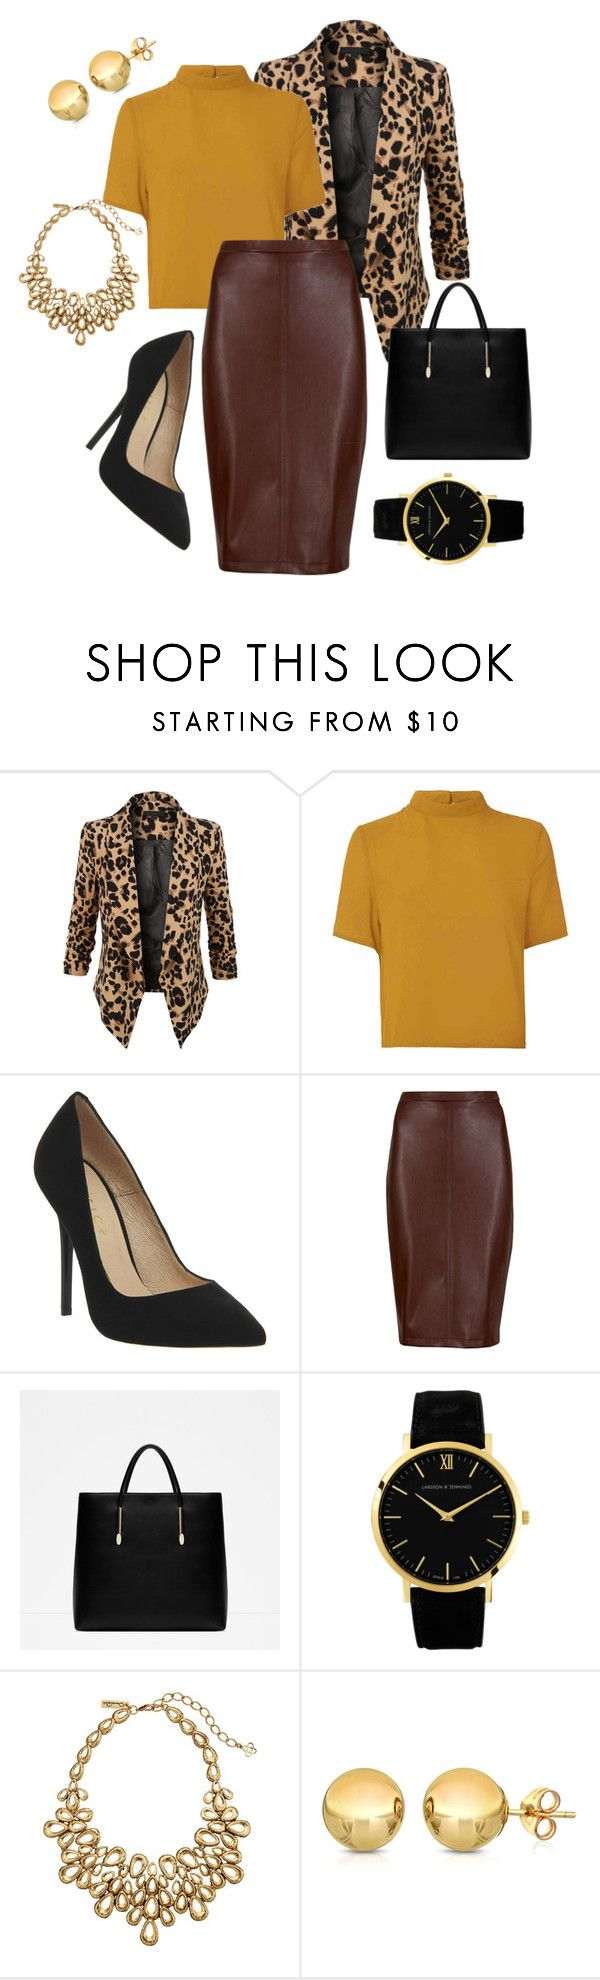 """Naispomo"" by jiroutconsulting on Polyvore featuring LE3NO, Glamorous, Office, M&S Collection, Zara, Larsson & Jennings, Oscar de la Renta and Sevil Designs"